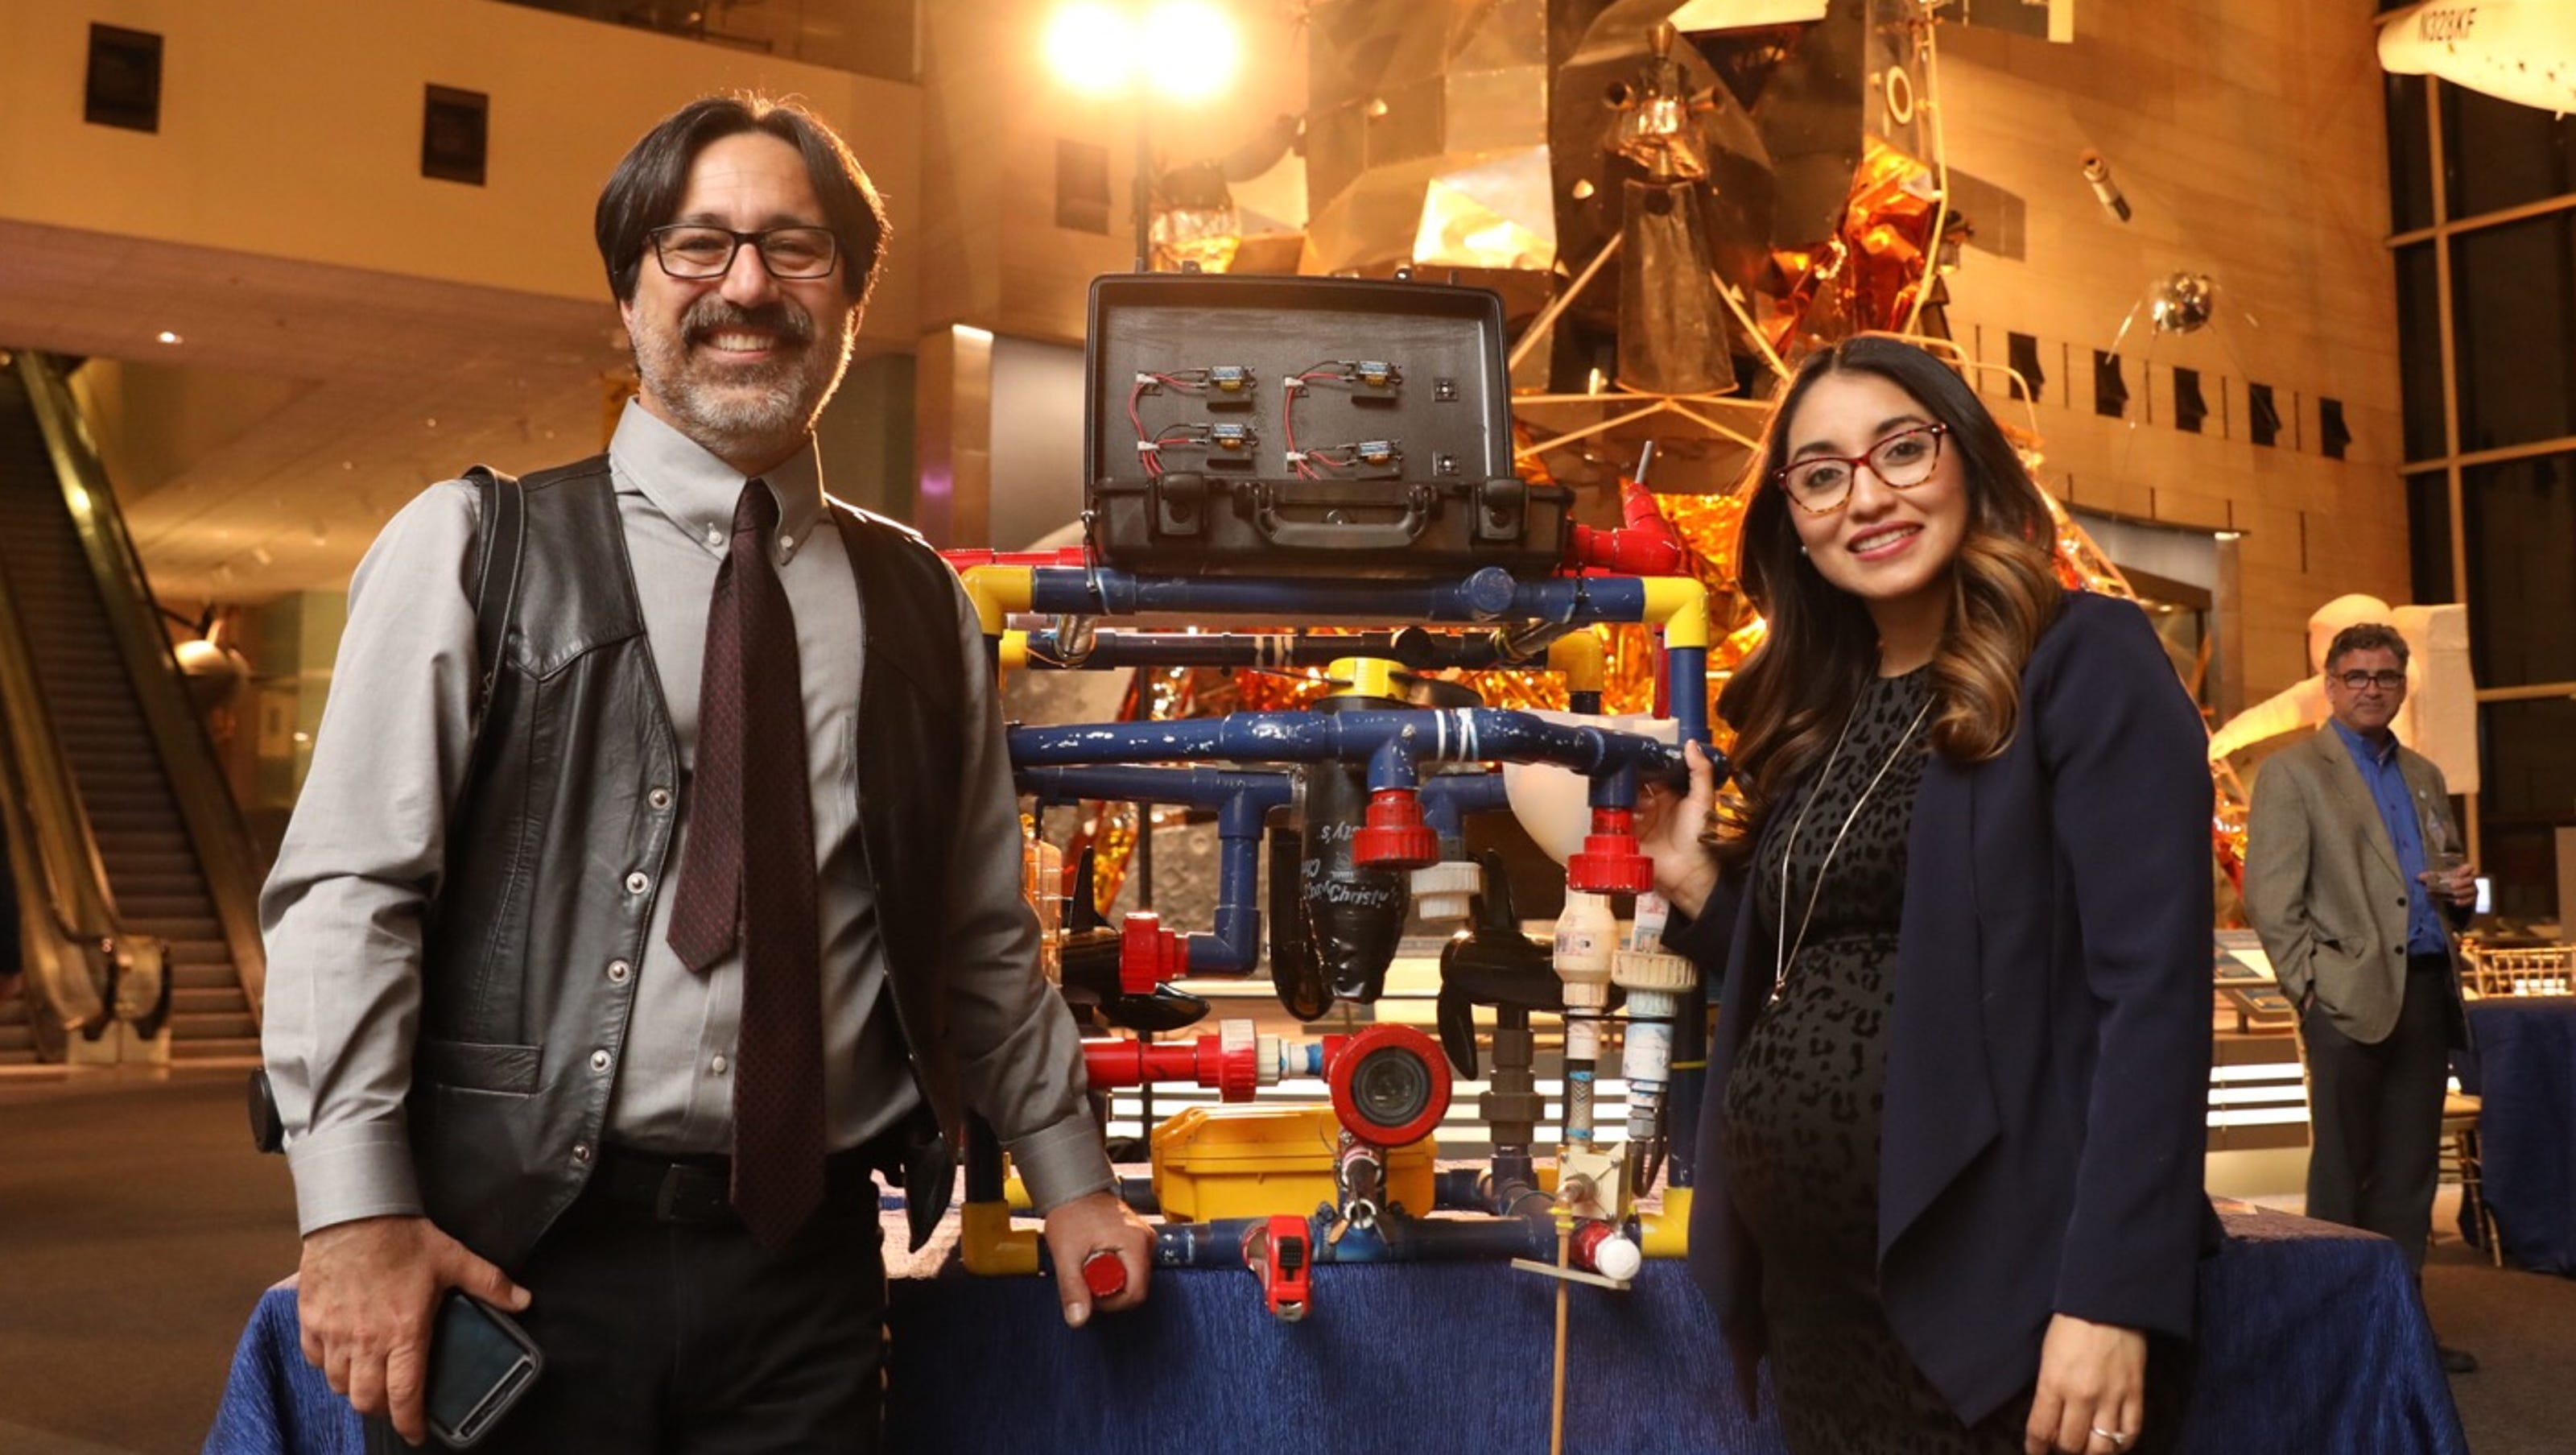 Phoenix High School S Stinky Robot Displayed At Smithsonian For